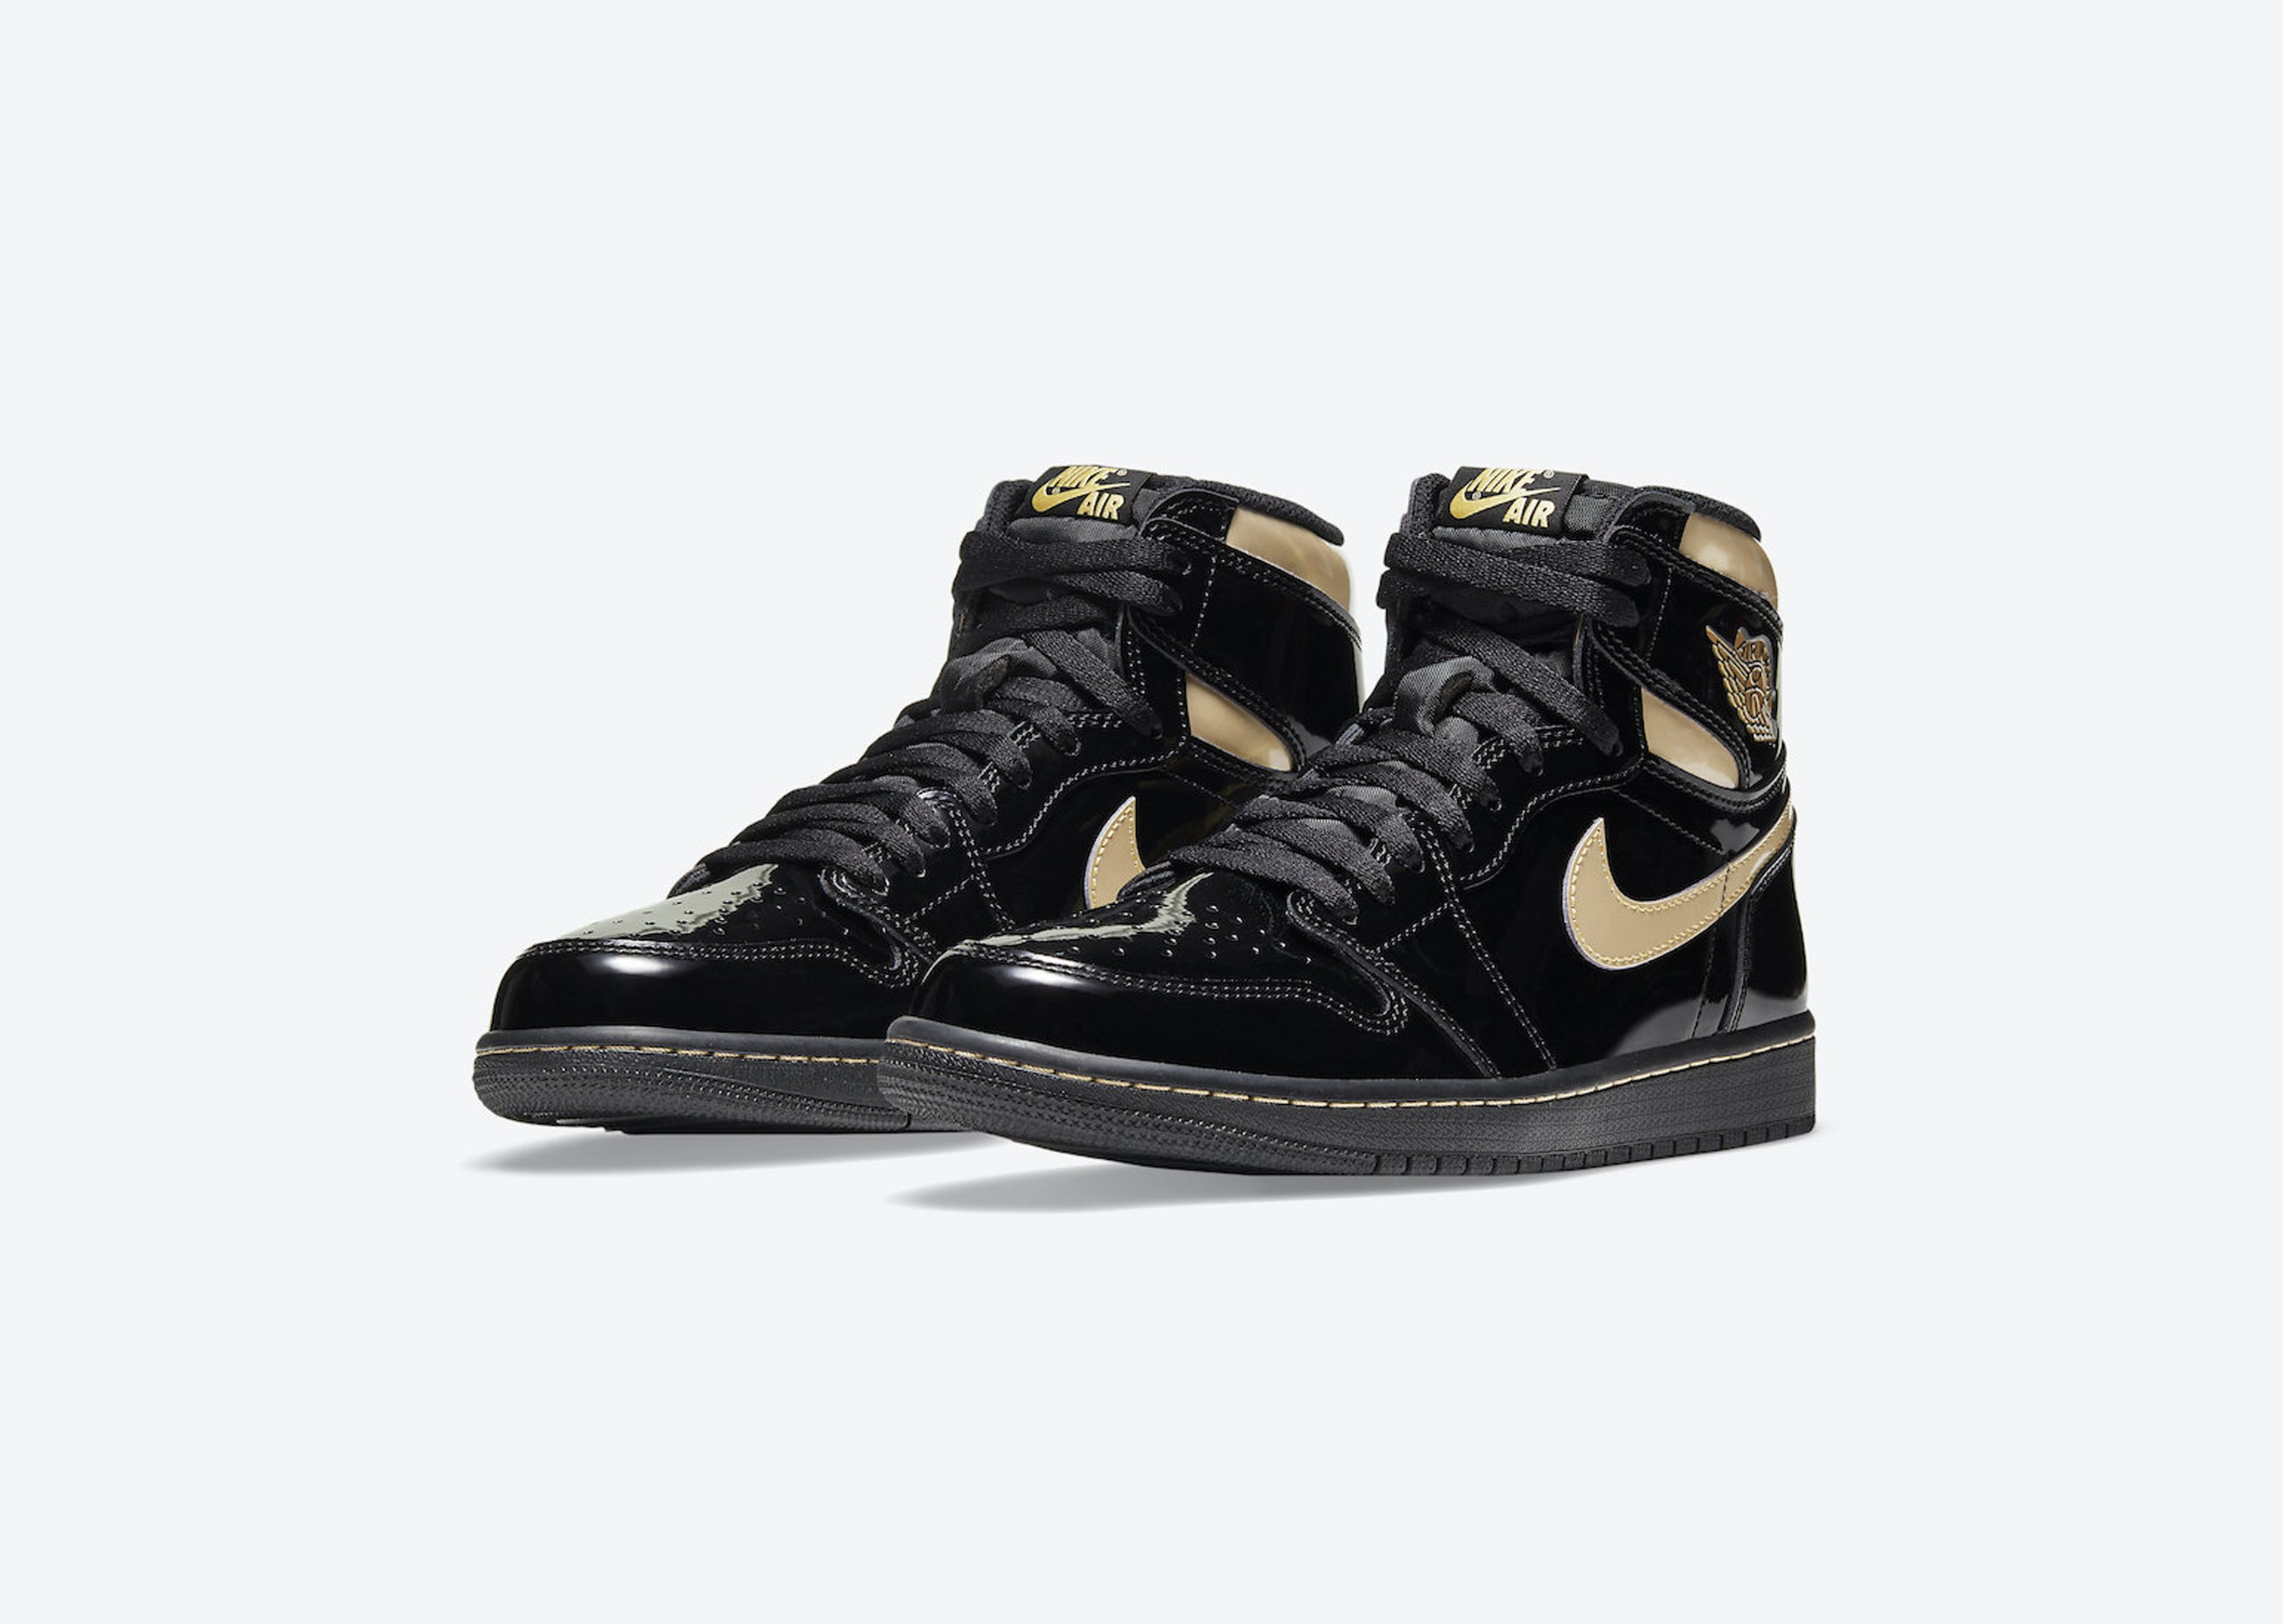 AJ1_BLACK_GOLD__0003_Layer 6